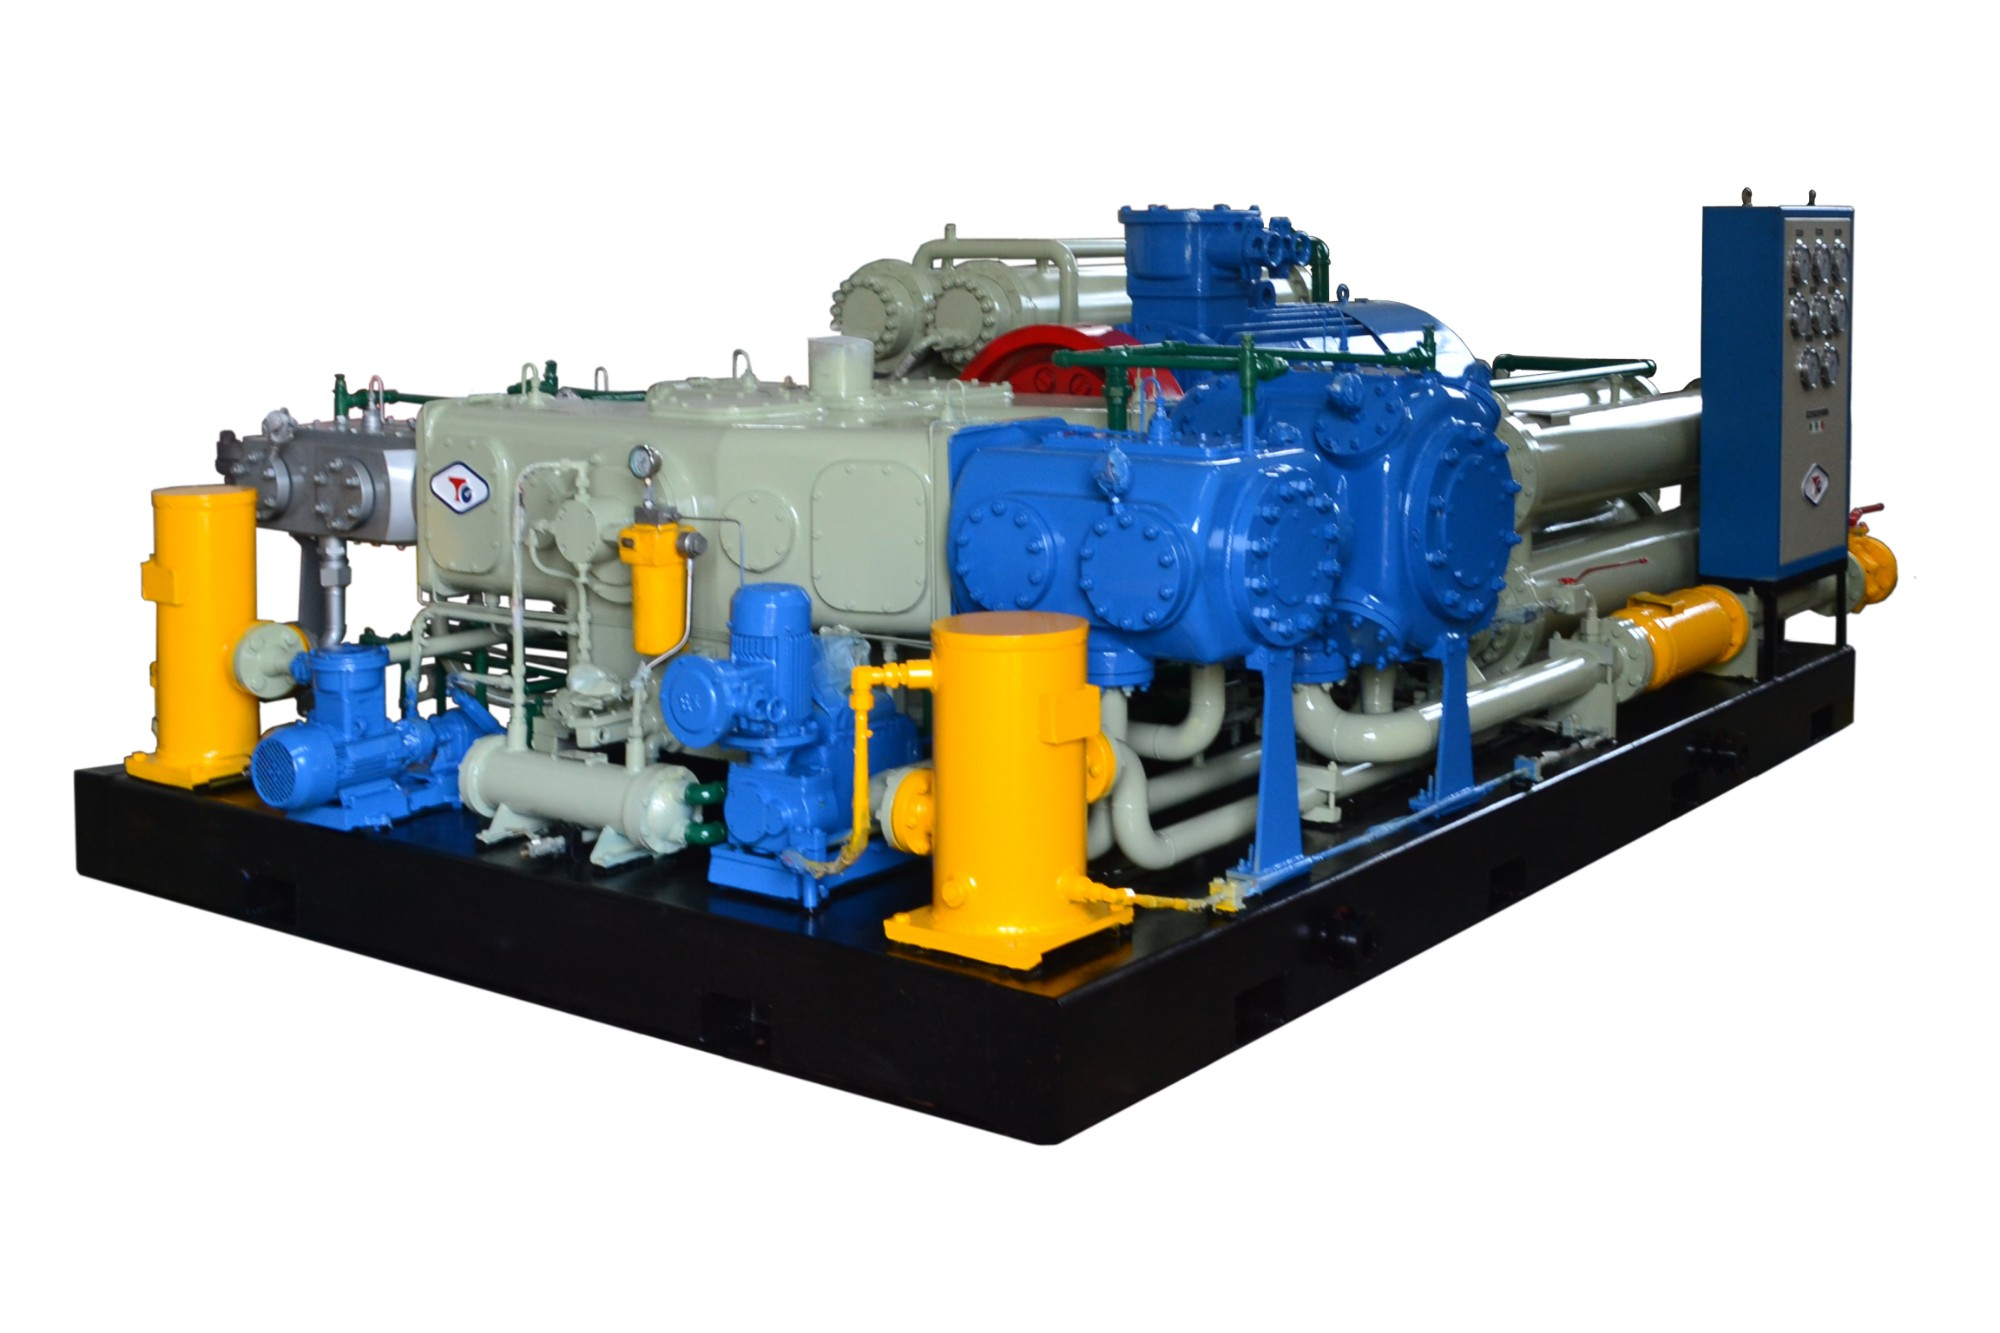 700kw Mother Station Gas Compressor Manufacturers, 700kw Mother Station Gas Compressor Factory, Supply 700kw Mother Station Gas Compressor